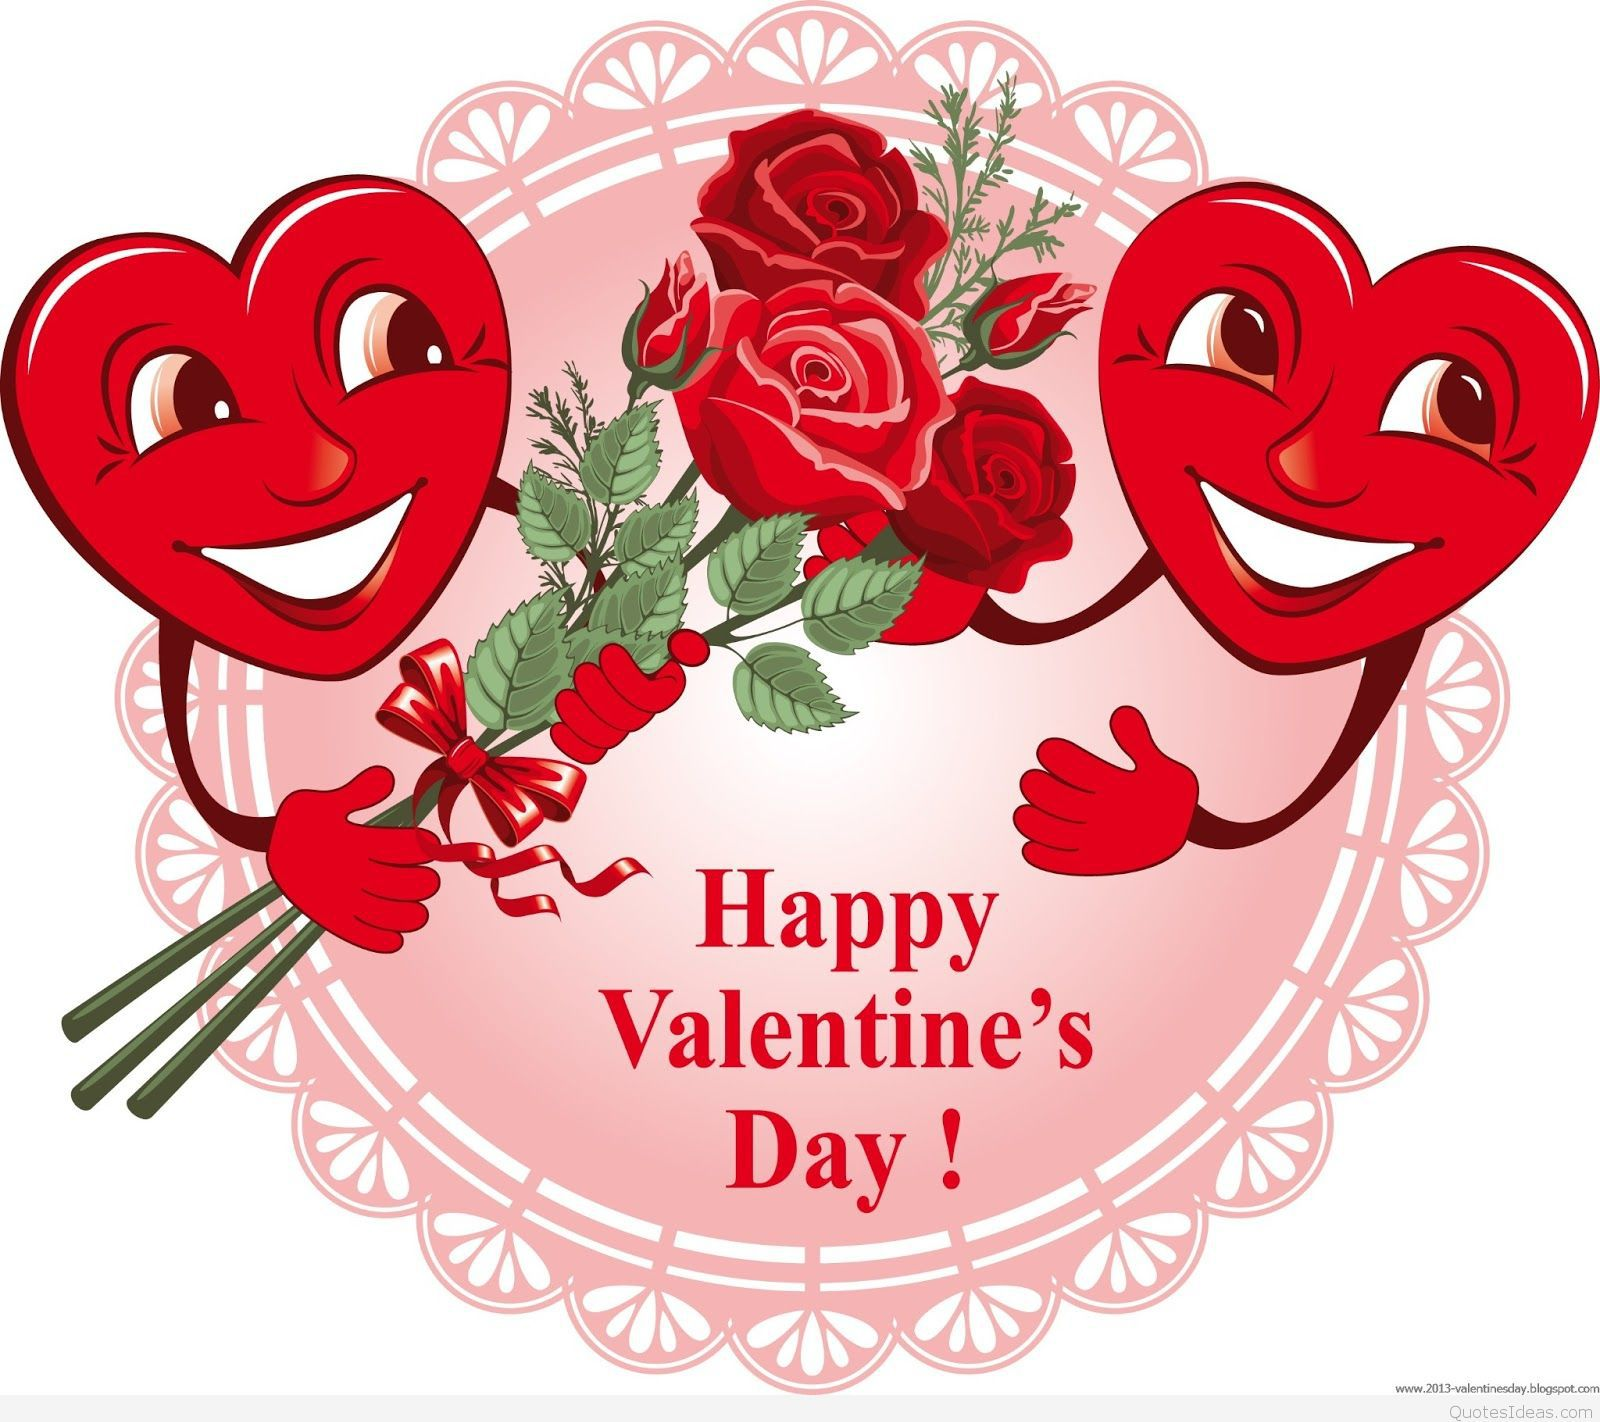 advance valentine's day photos